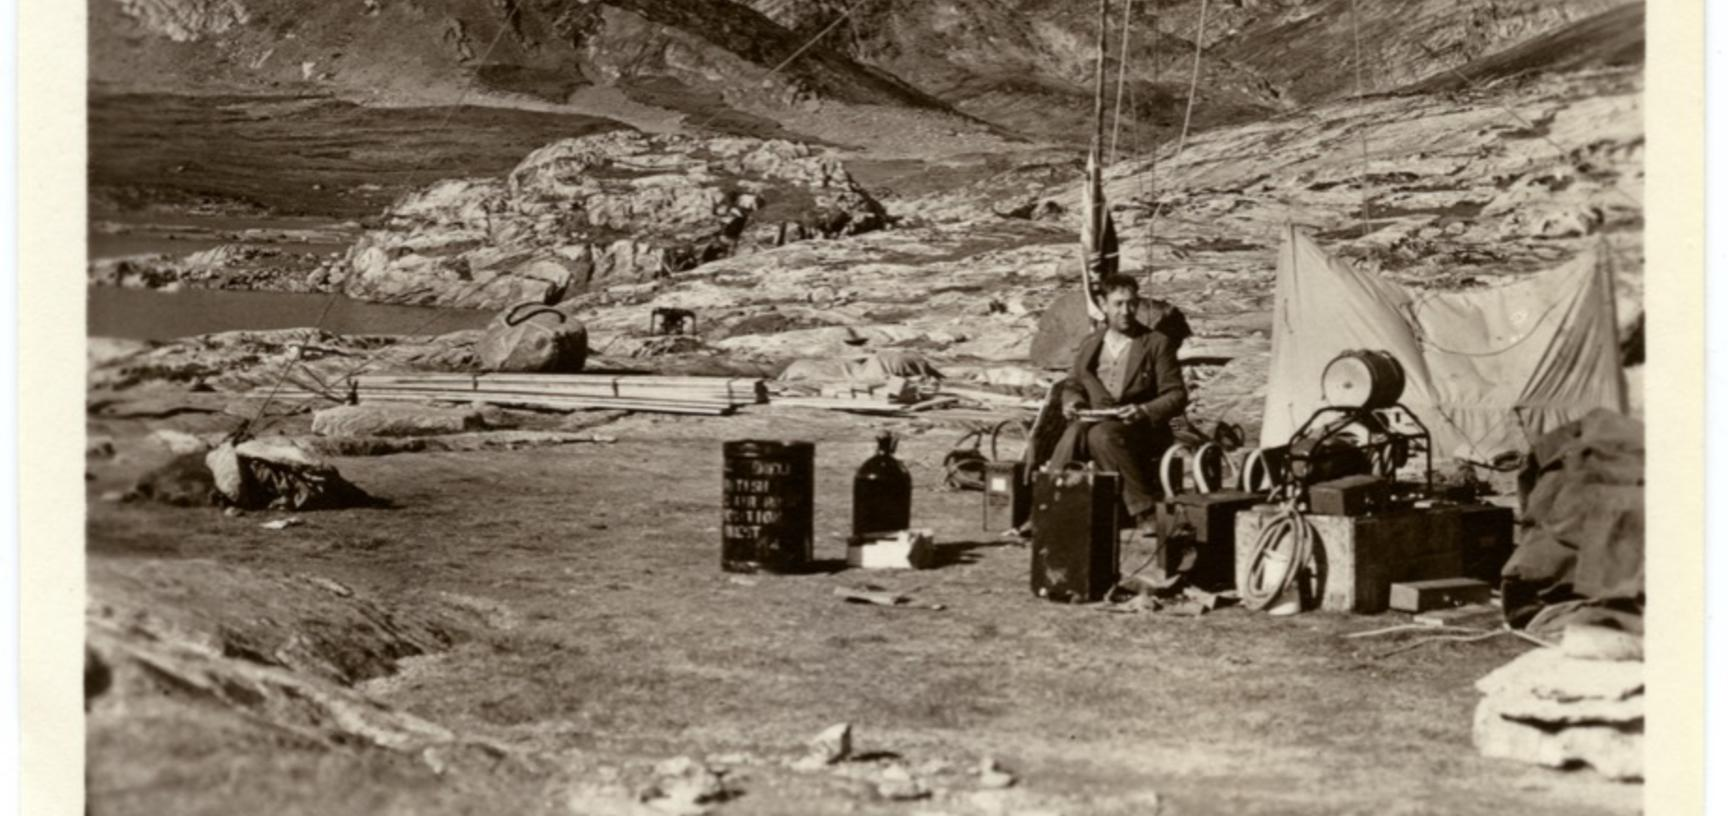 A member of the expedition party working outside. Photographer unknown. Greenland. 1930–1931.